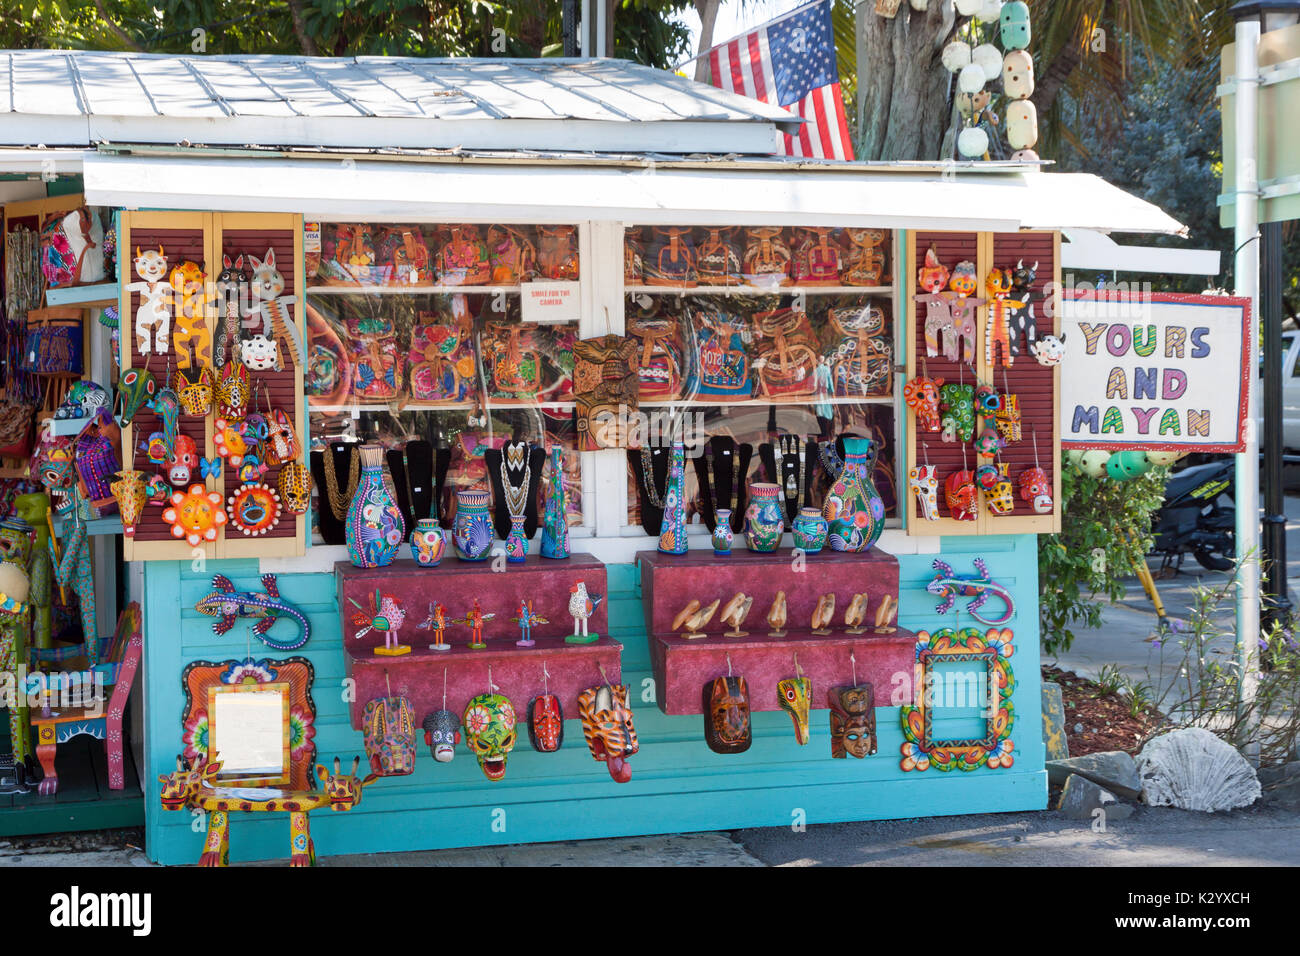 Yours and Mayan, a shop in Key West, FL, sells imported handicrafts from Central America thru Fair Trade, helping people be economically independent. - Stock Image